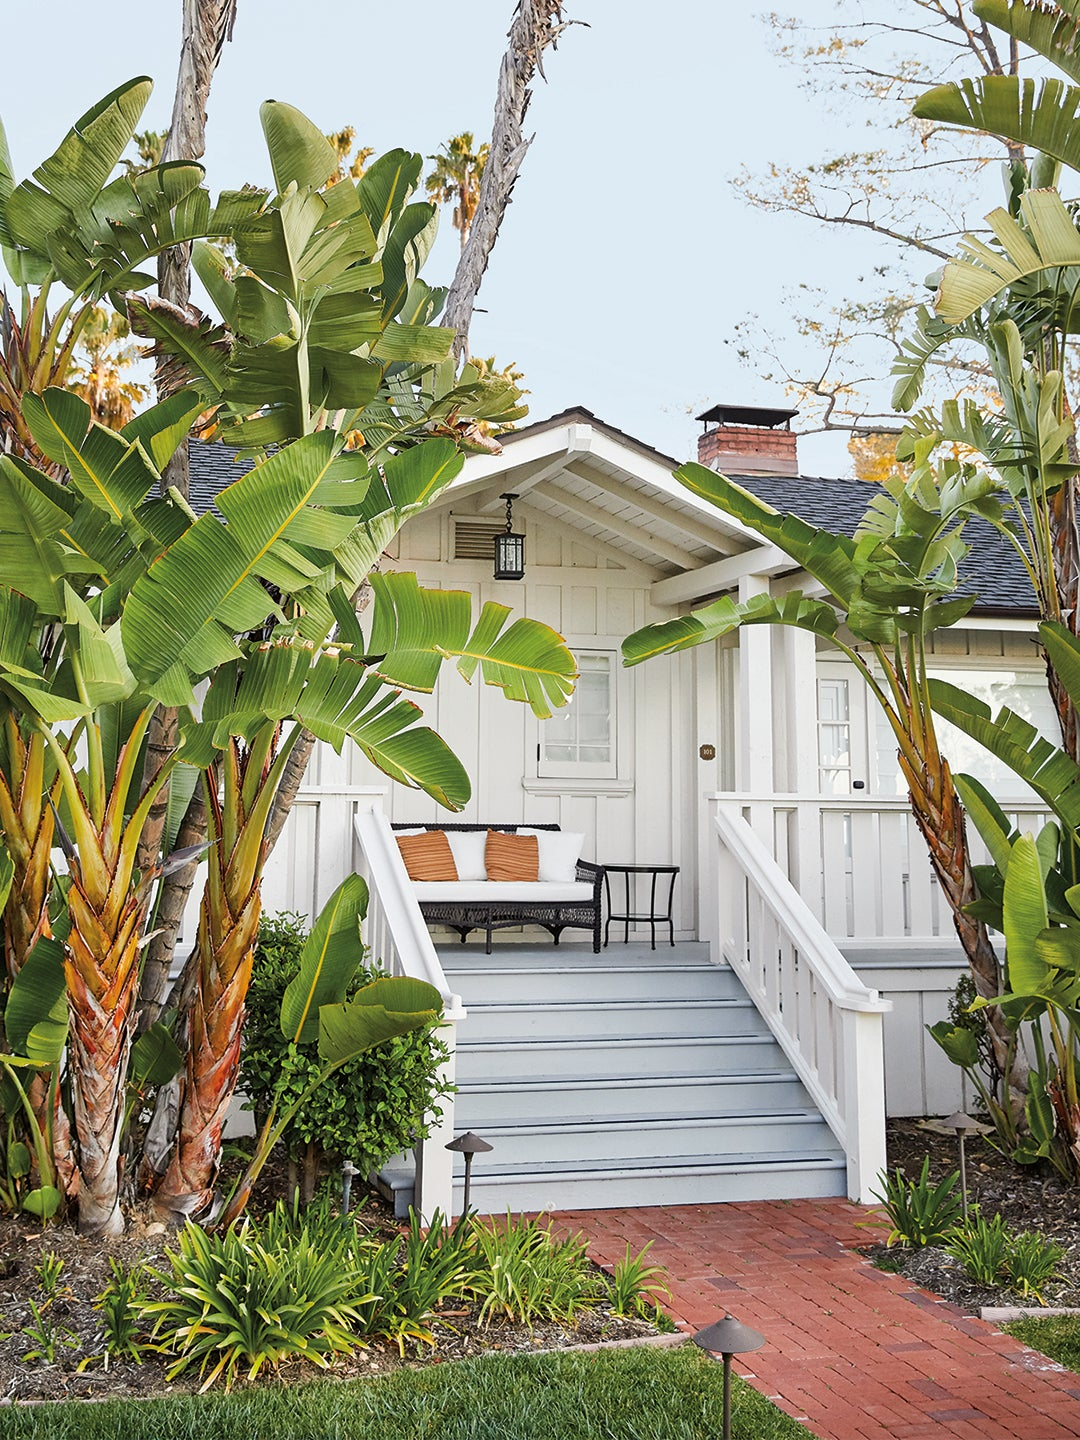 exterior of a home with tropical trees